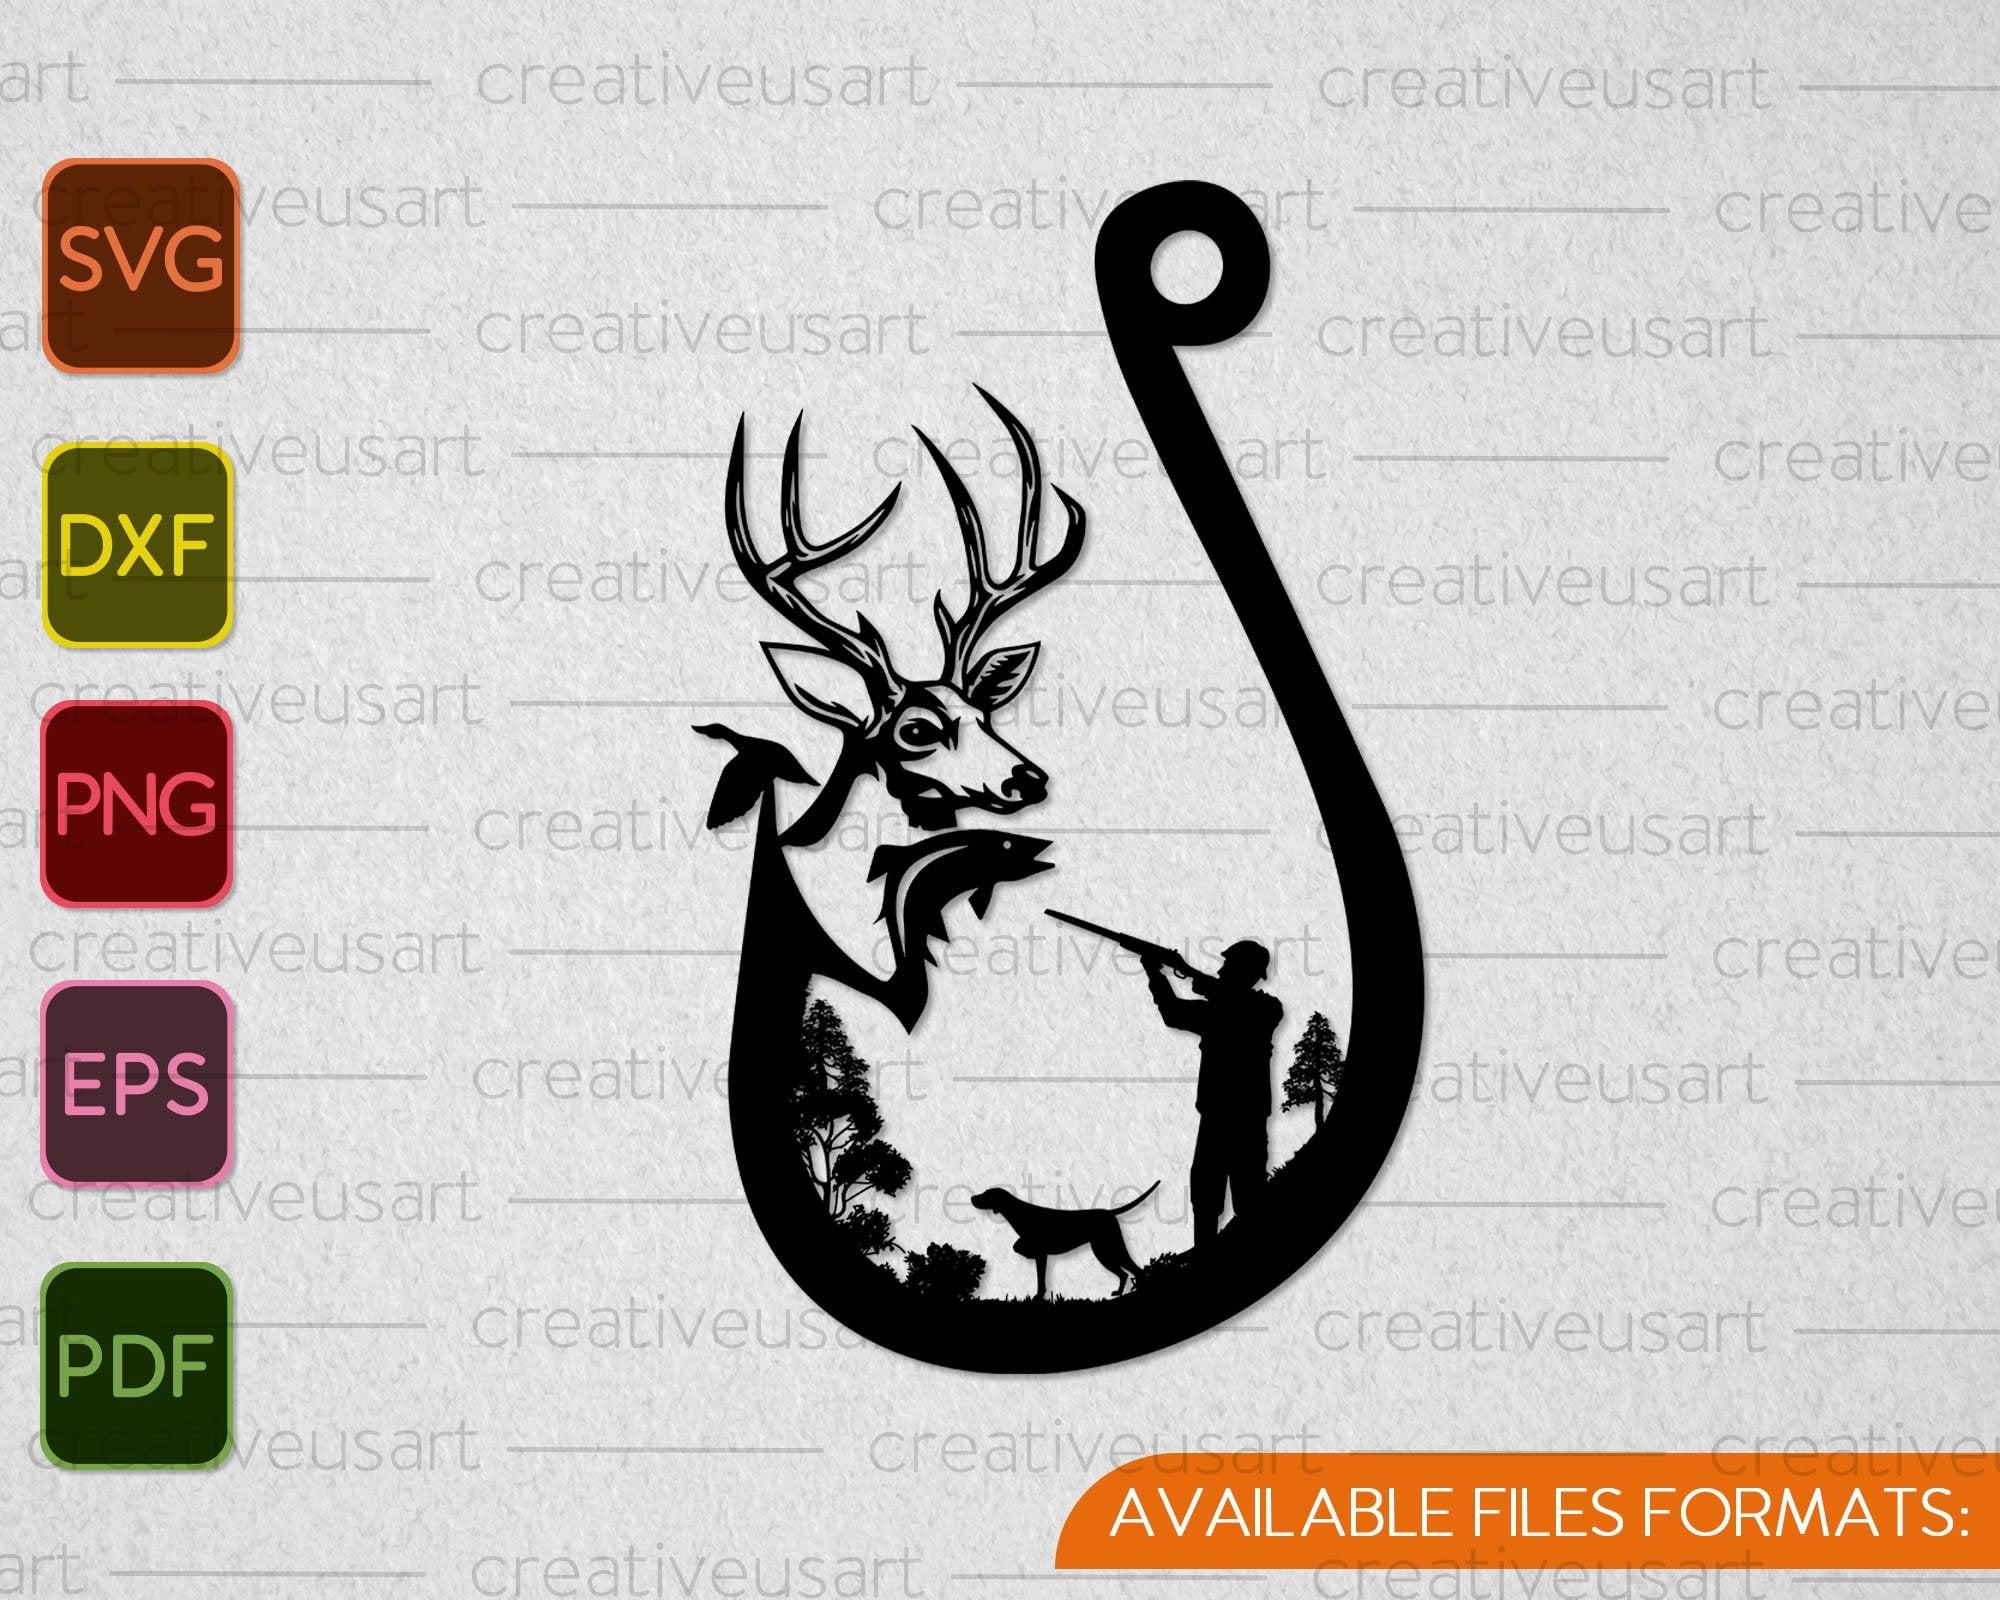 Download Deer And Hook Svg File Hunting And Fishing Svg File Hunting Fishing Duck Vector Clip Art Cricut Silhouette Cameo Vinyl Cut Visual Arts Craft Supplies Tools Kromasol Com